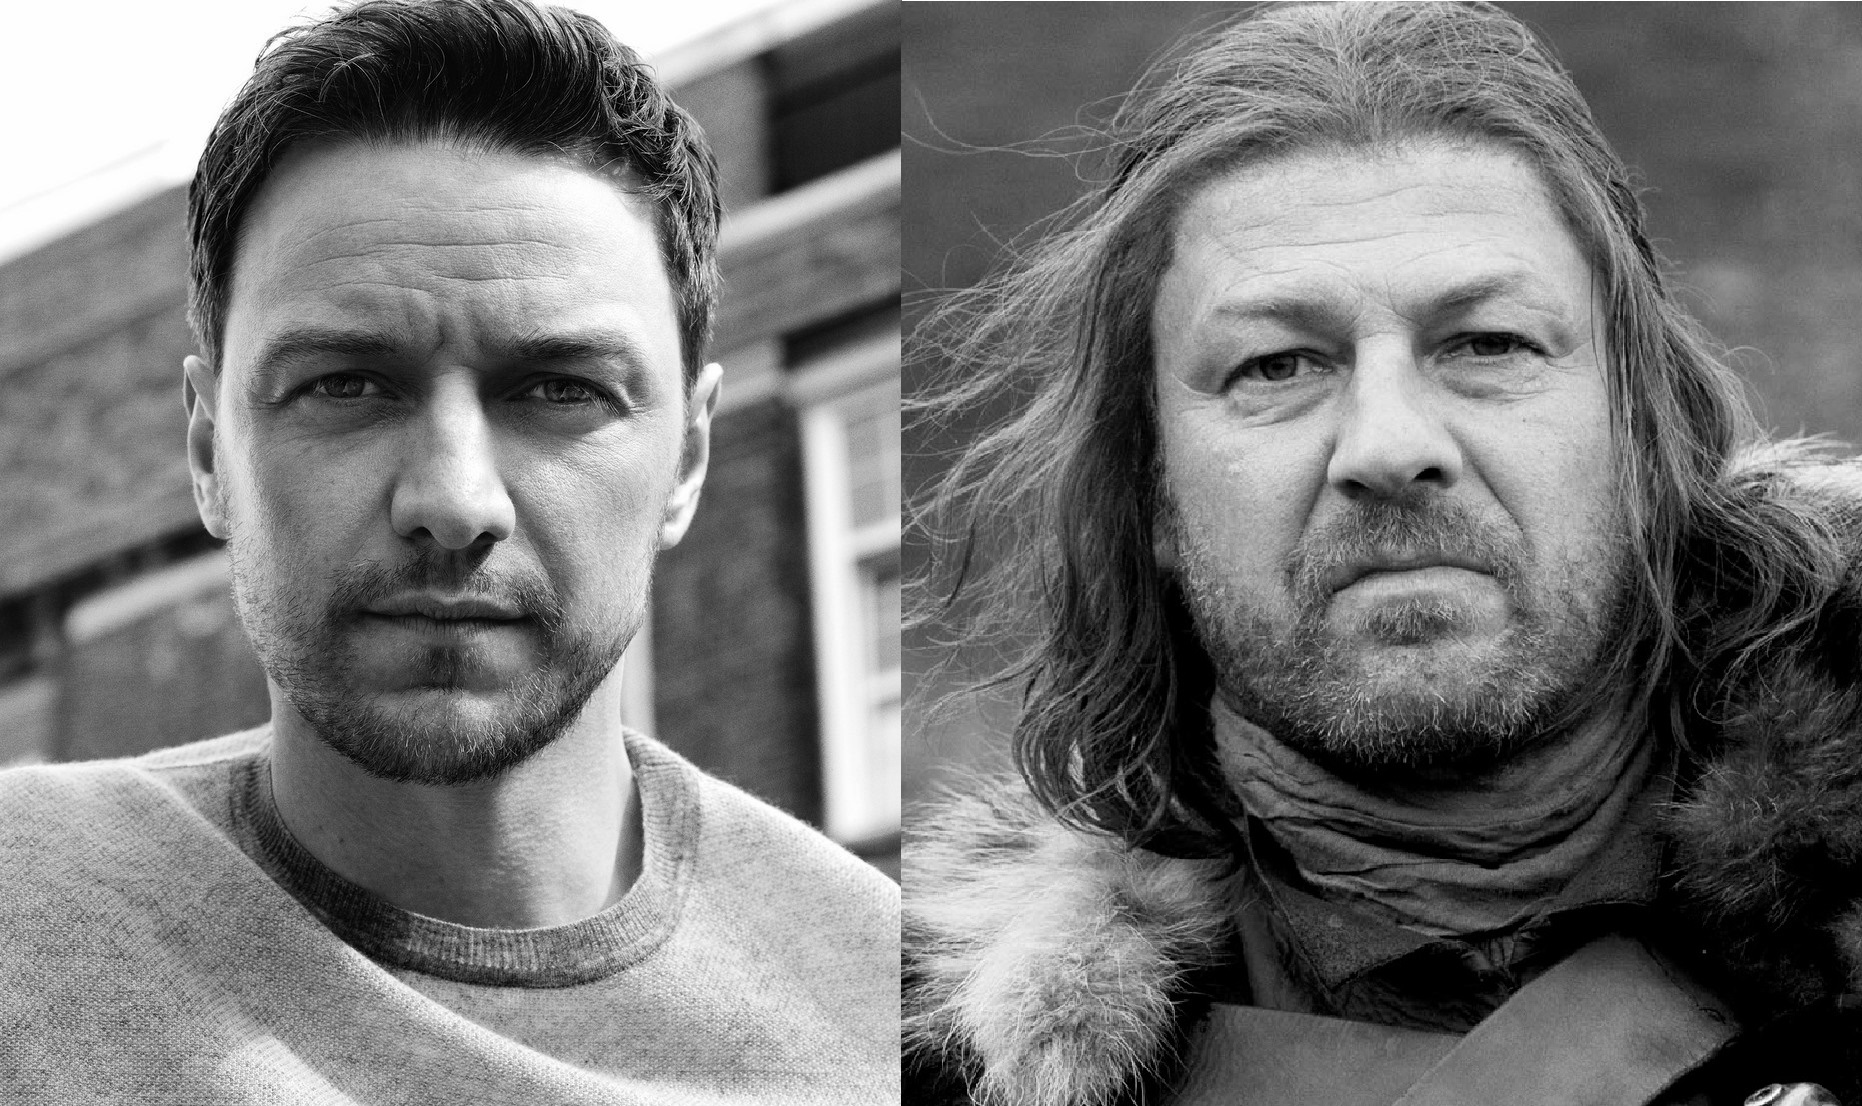 James McAvoy as Eddard Stark the Quiet Wolf